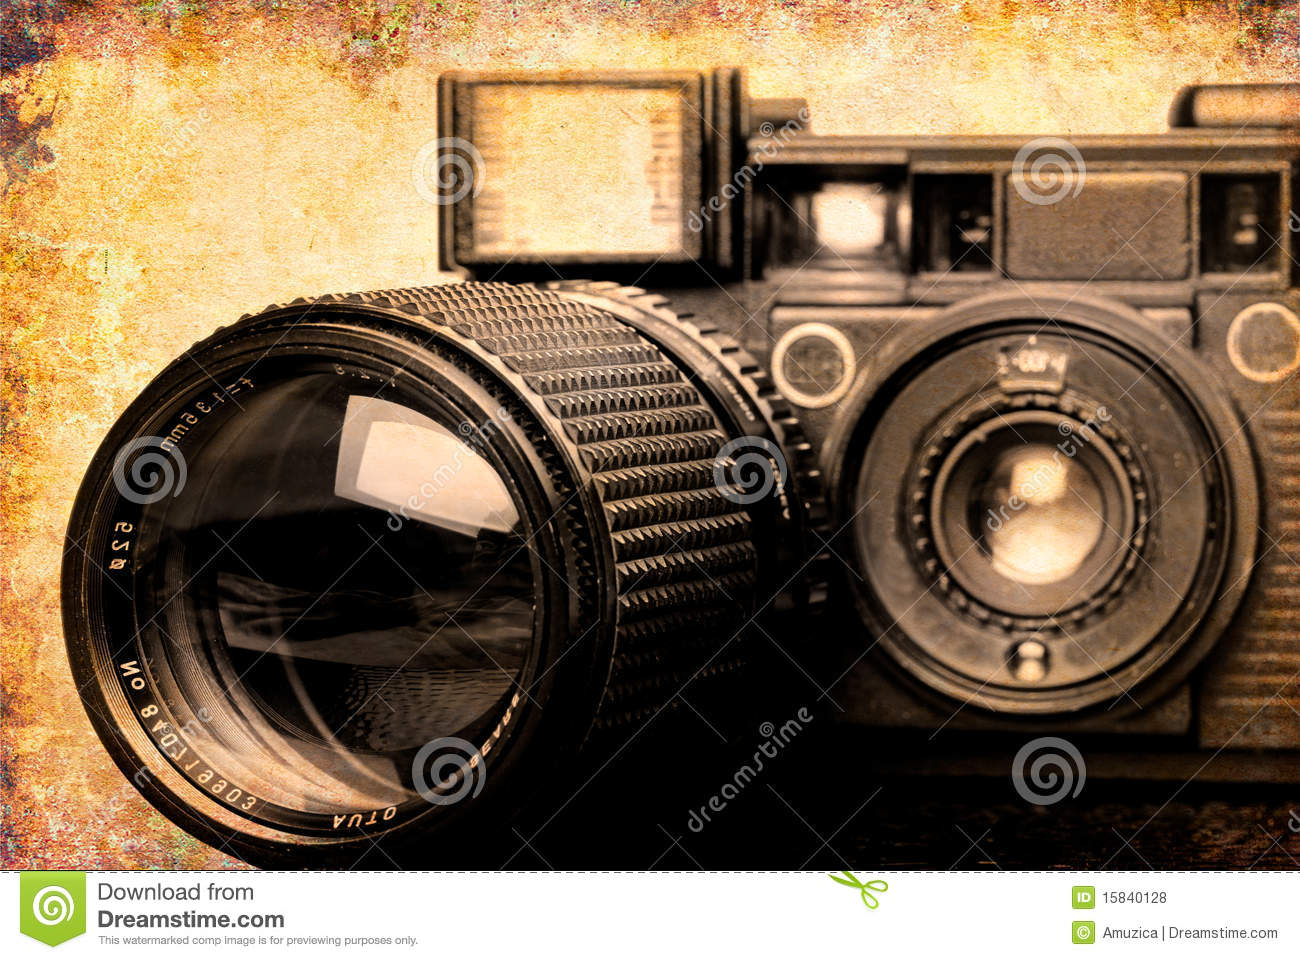 Grunge Camera Effect : Vintage folding camera with a grunge texture stock photo image